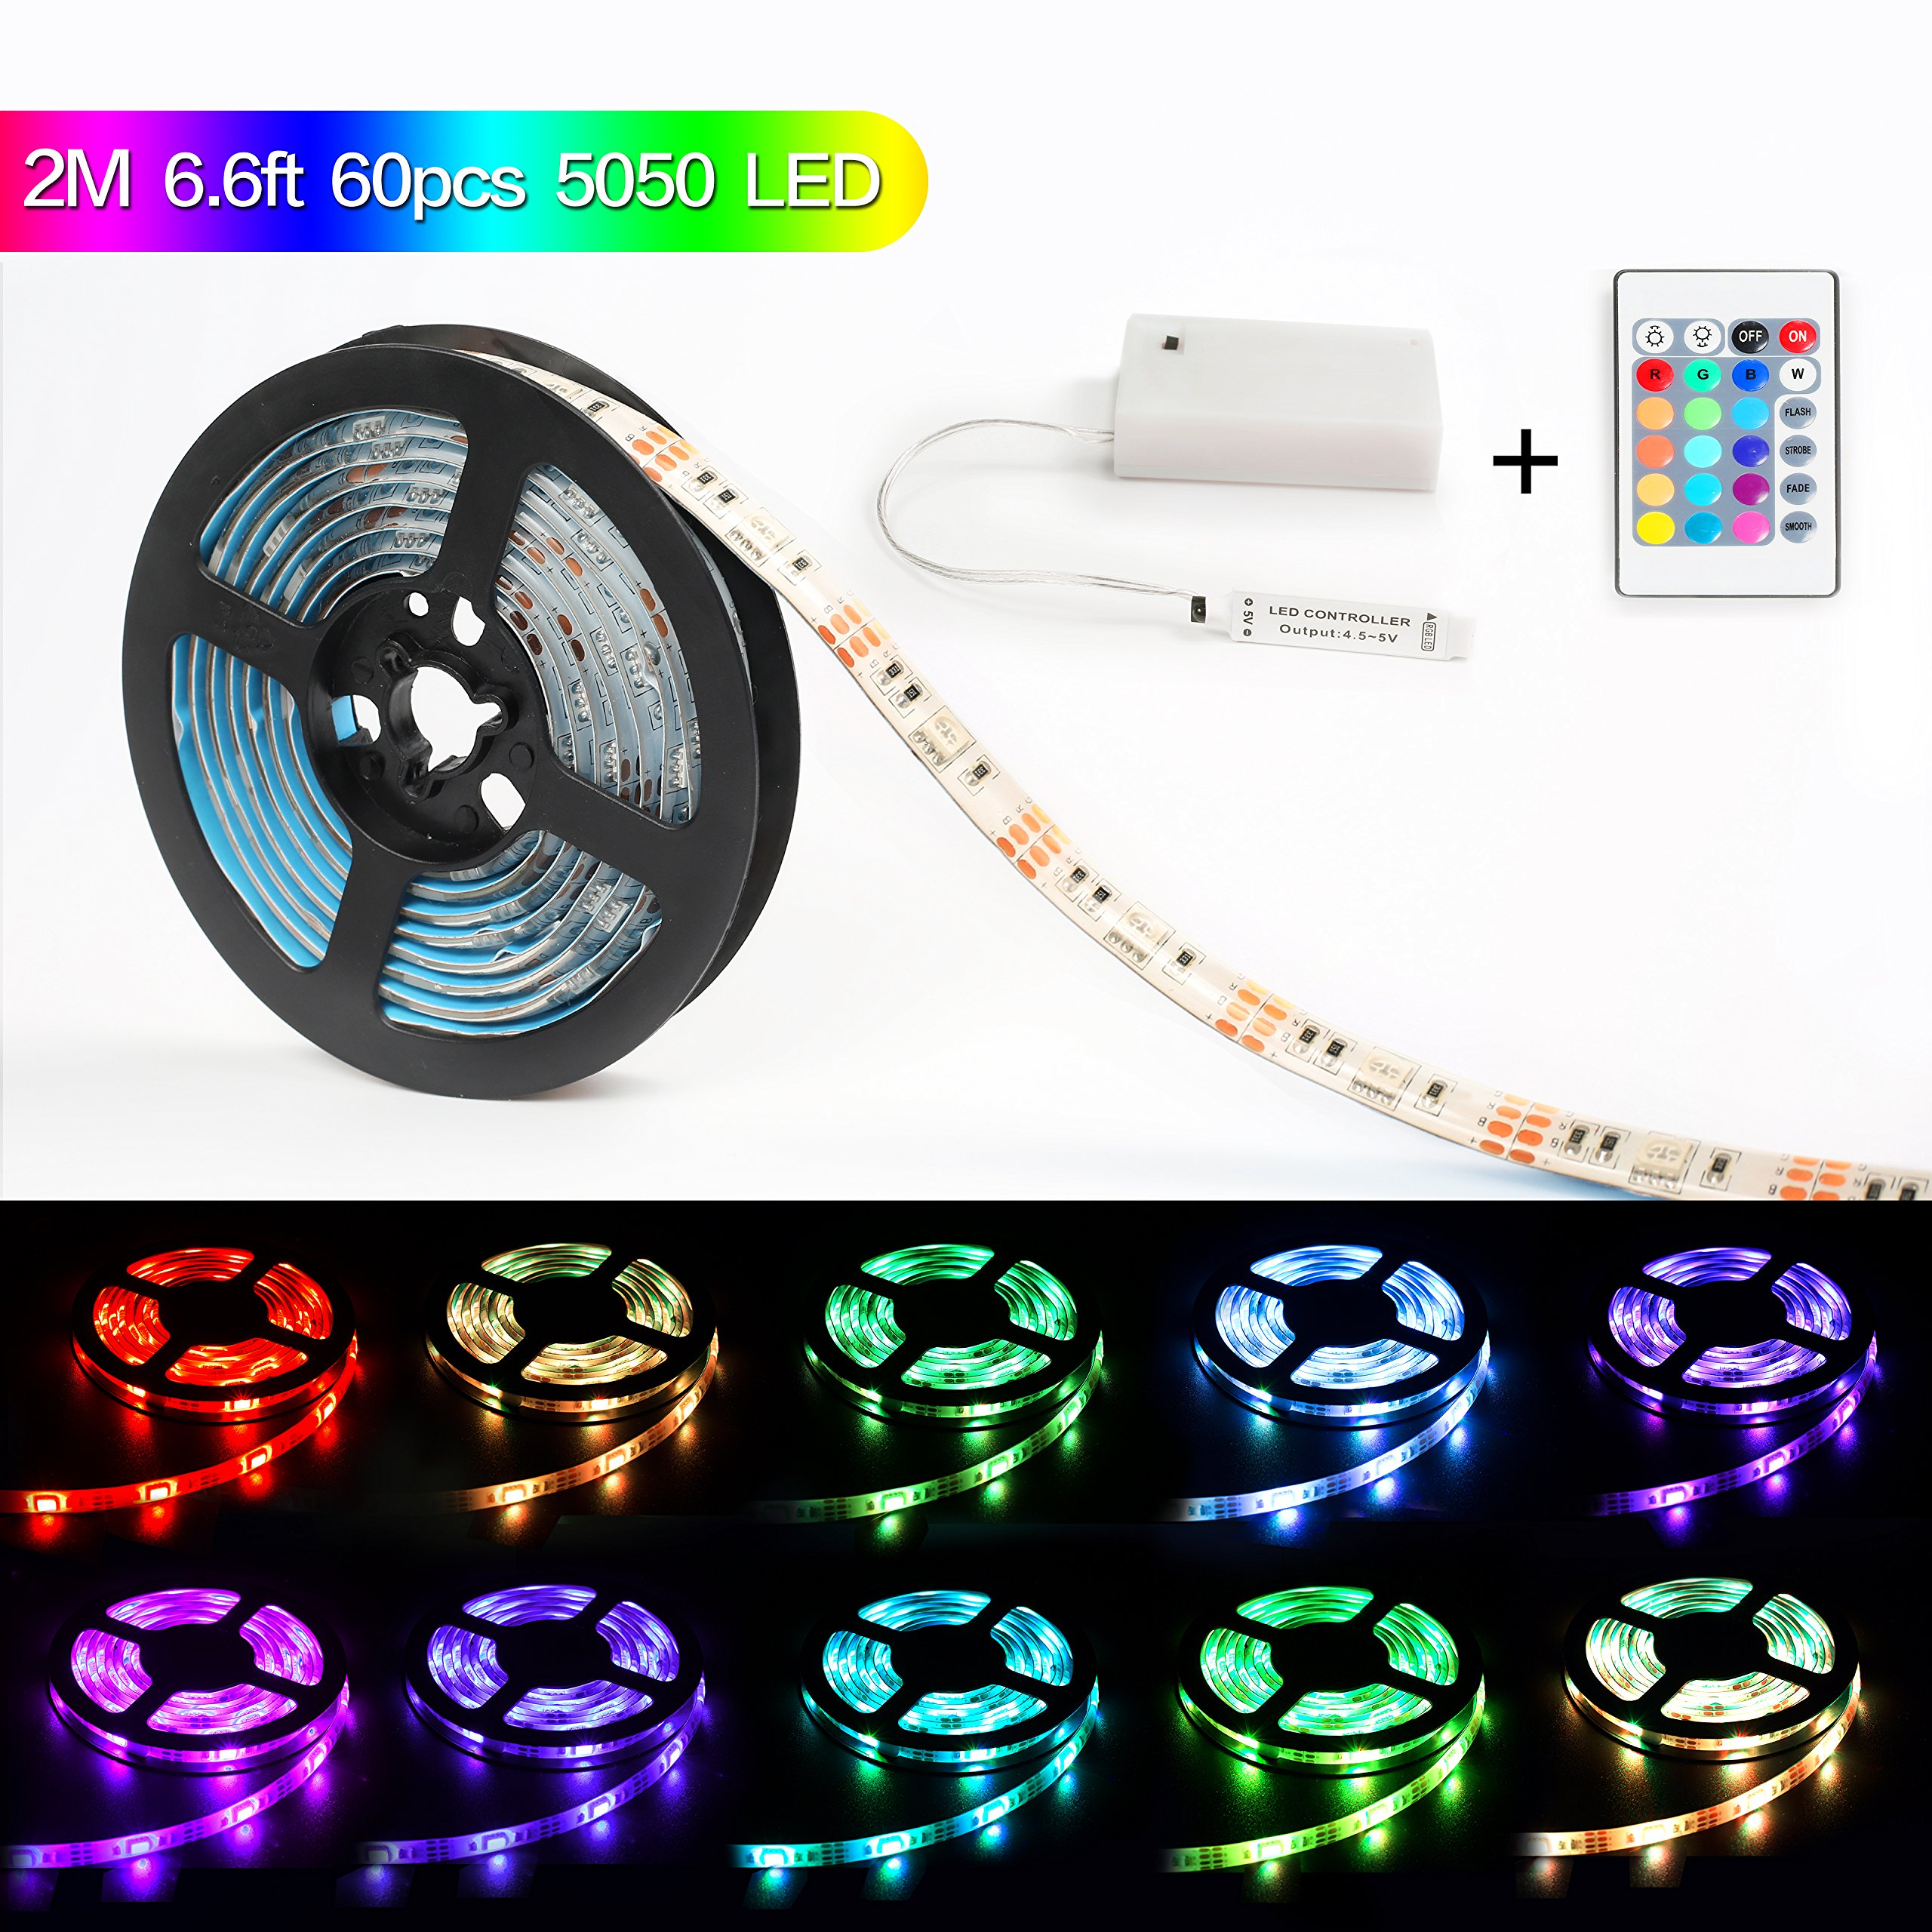 Led Light Strip Battery Powered,MEILLY RGB 2M / 6.6FT 60pcs 5050 Leds Strip Light IP65 Waterproof Flexible Rope Lights, Color Changing Strip Lightings with 24 Key Remote Control ( Blue Green Red)